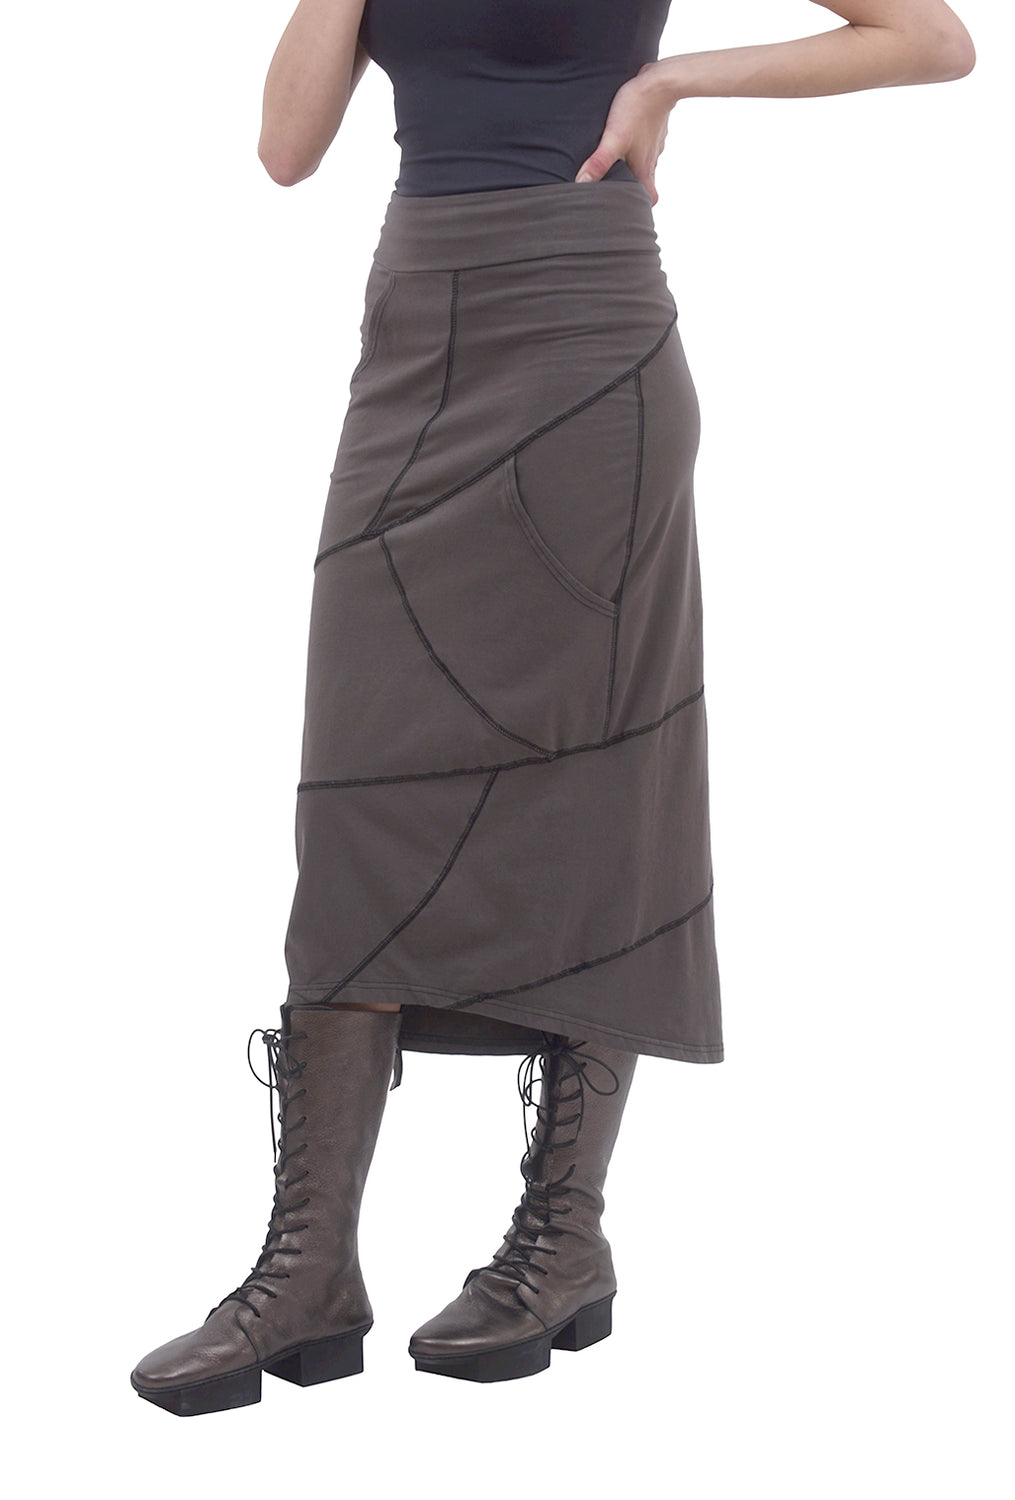 Cynthia Ashby Helix Knit Skirt, Bark